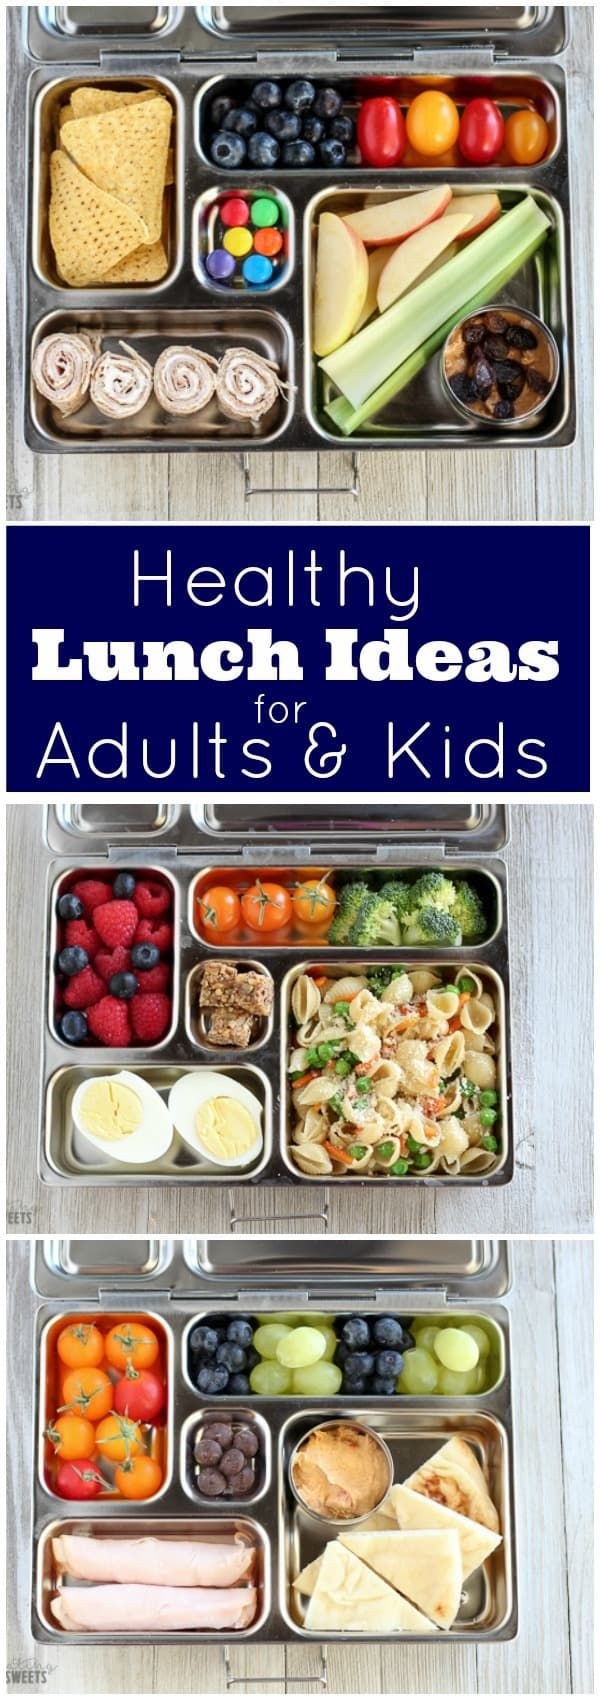 Healthy Lunch Ideas For Adults And Kids No Heating Or Microwave Needed Everything Can Be Served Chilled Or At Room Temperature Lunch Snacks Lunch